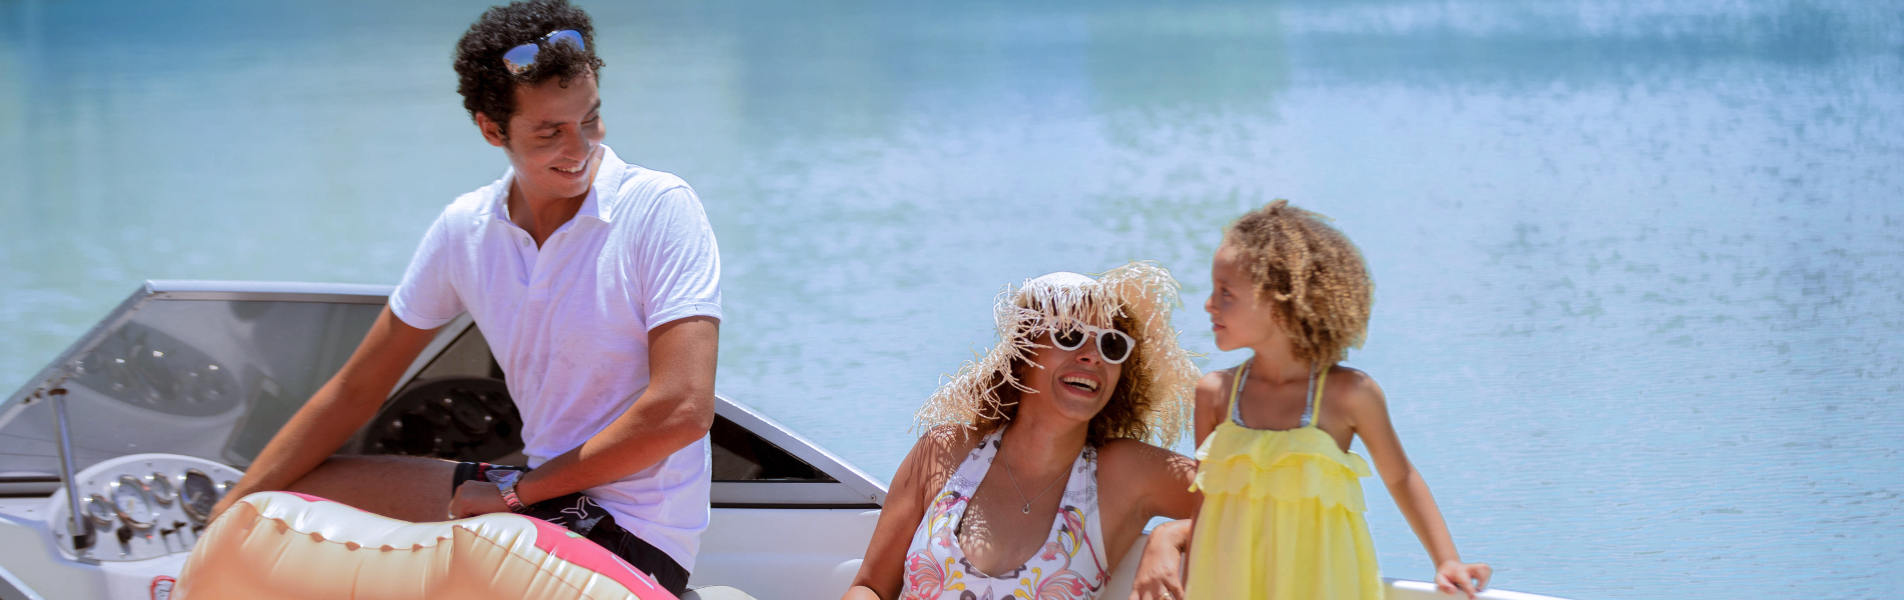 family having fun together in a boat at red sea el gouna town